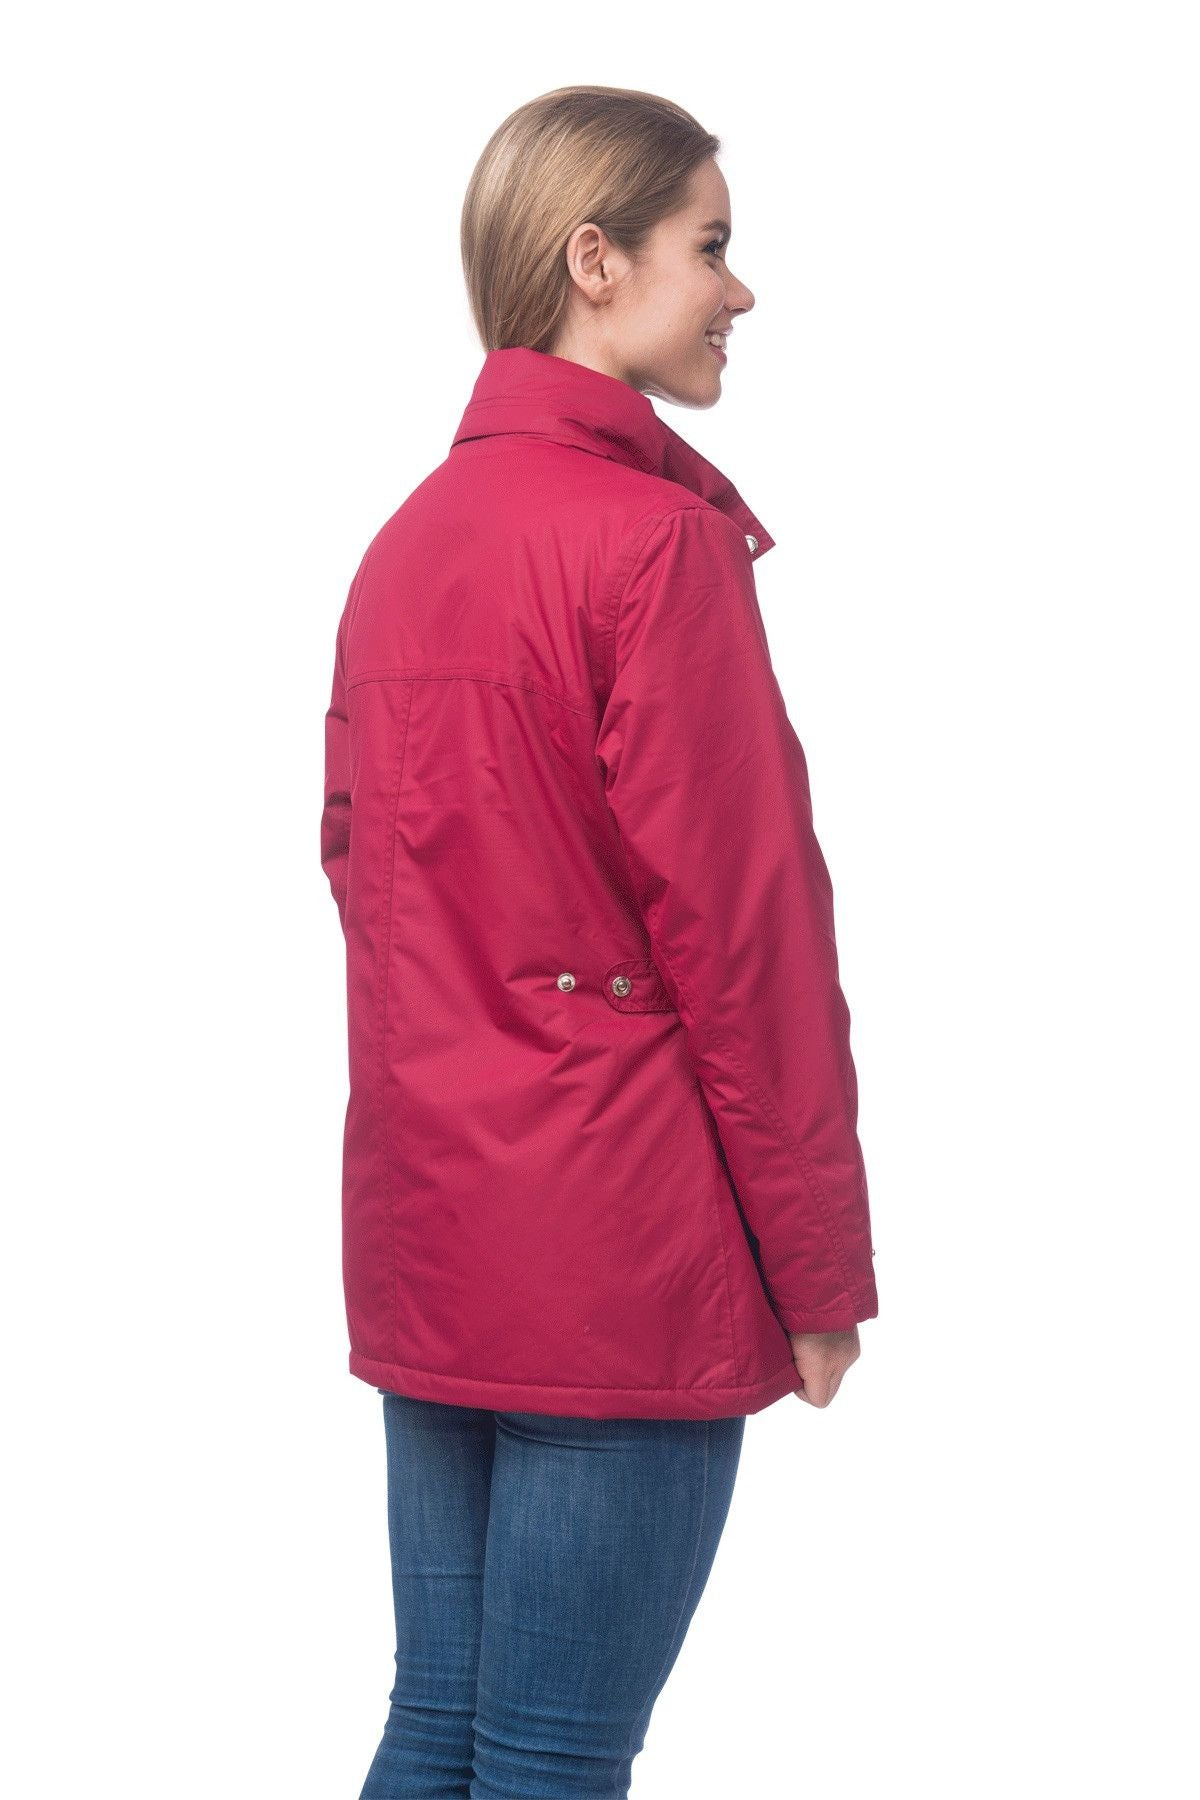 Eliza Womens Waterproof Insulated Jacket Target Dry